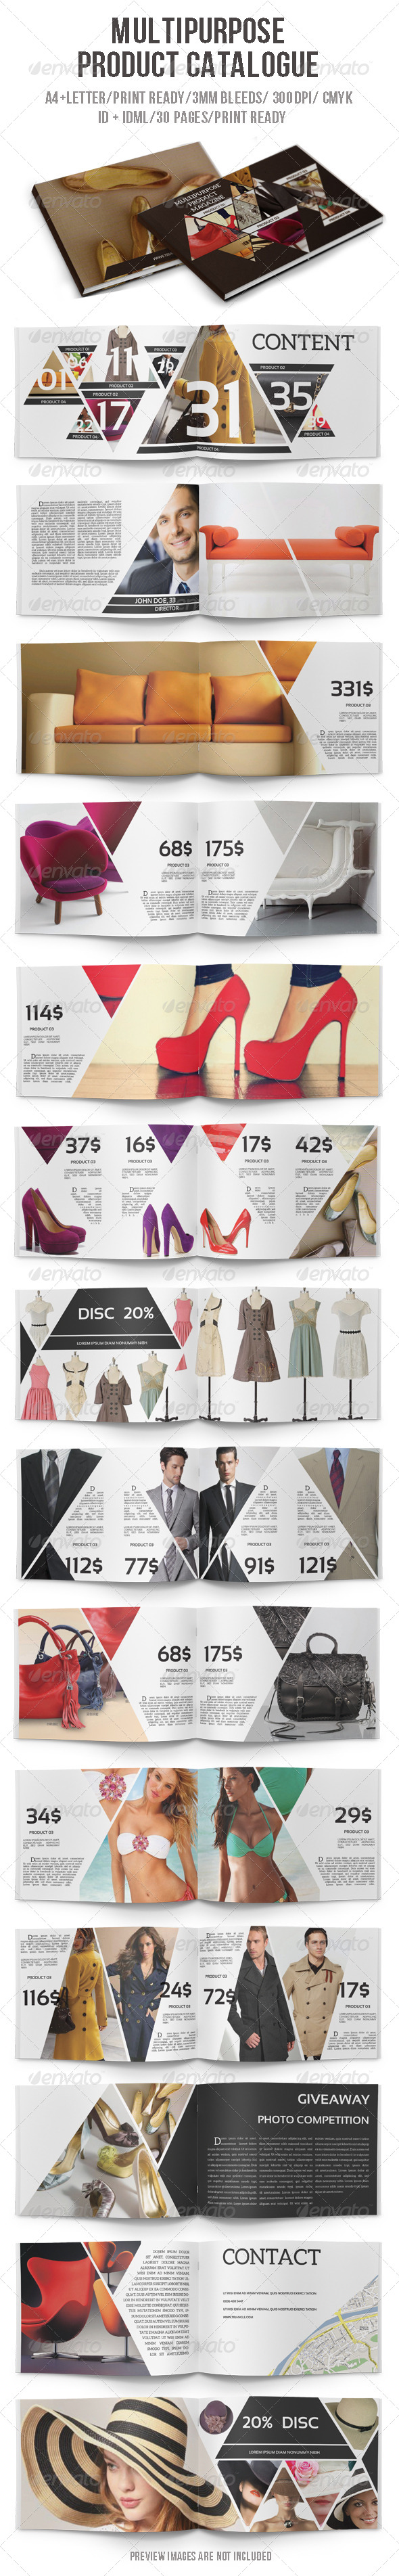 GraphicRiver Multipurpose Product Catalogue 6376793